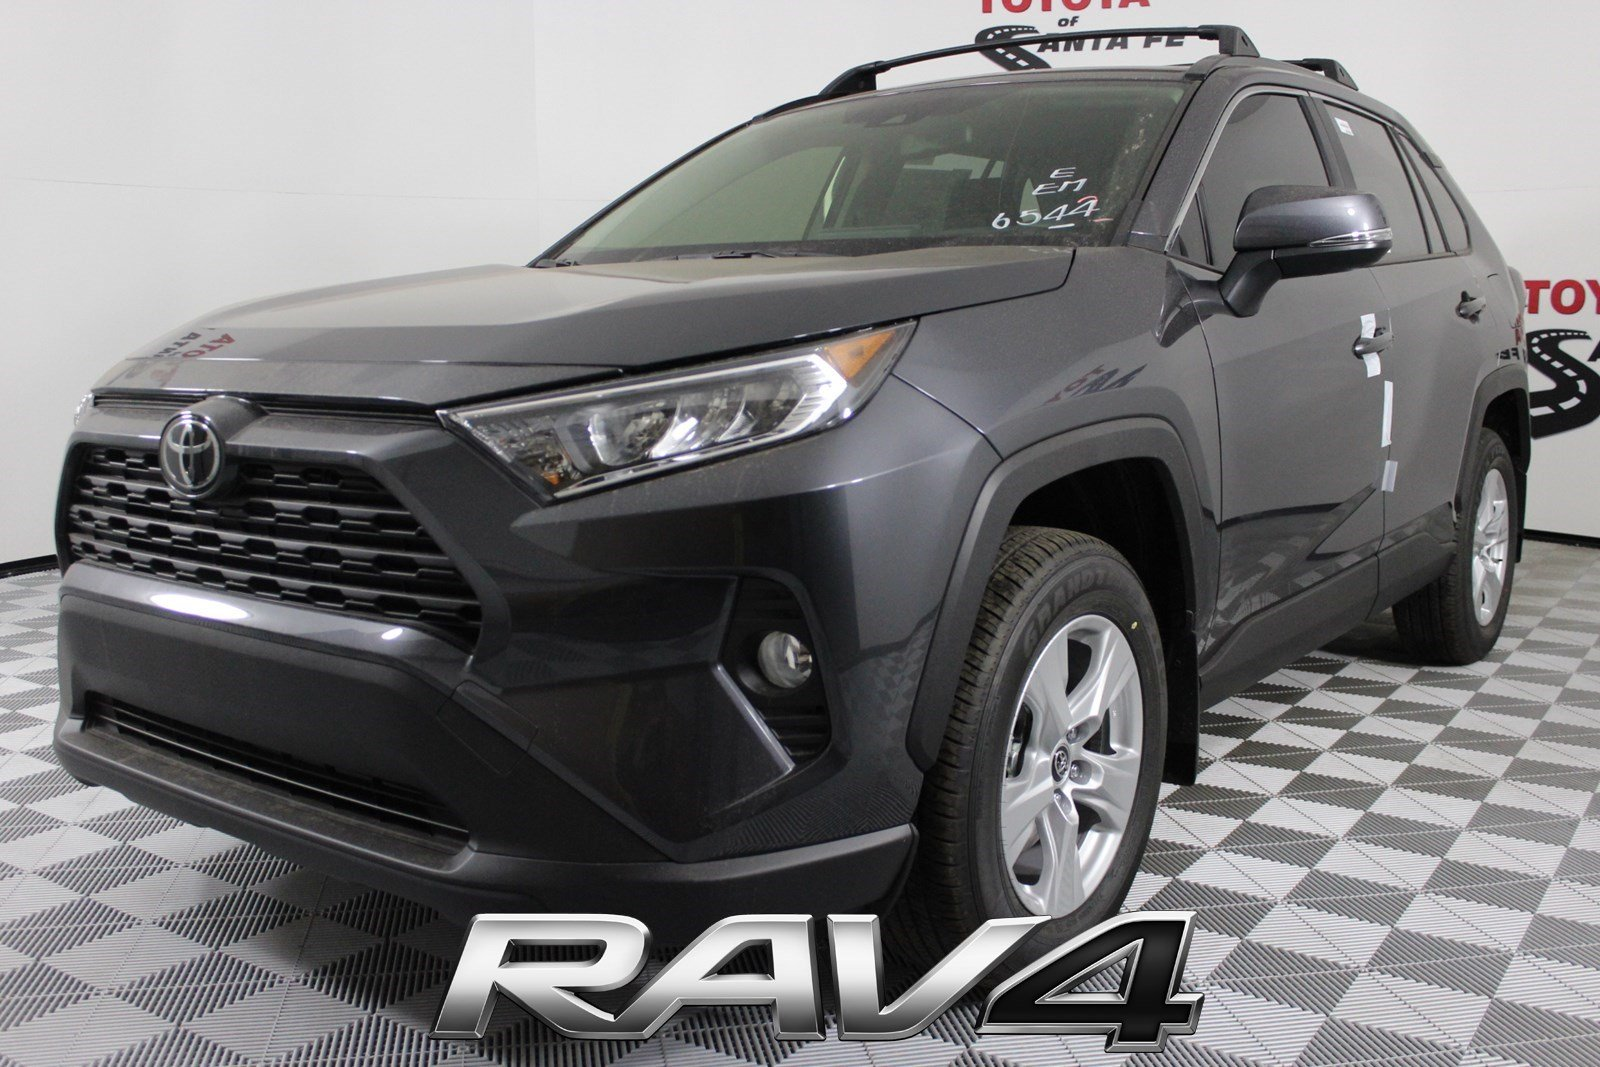 New 2019 Toyota Rav4 Le In Santa Fe Kw003522 Toyota Of Santa Fe